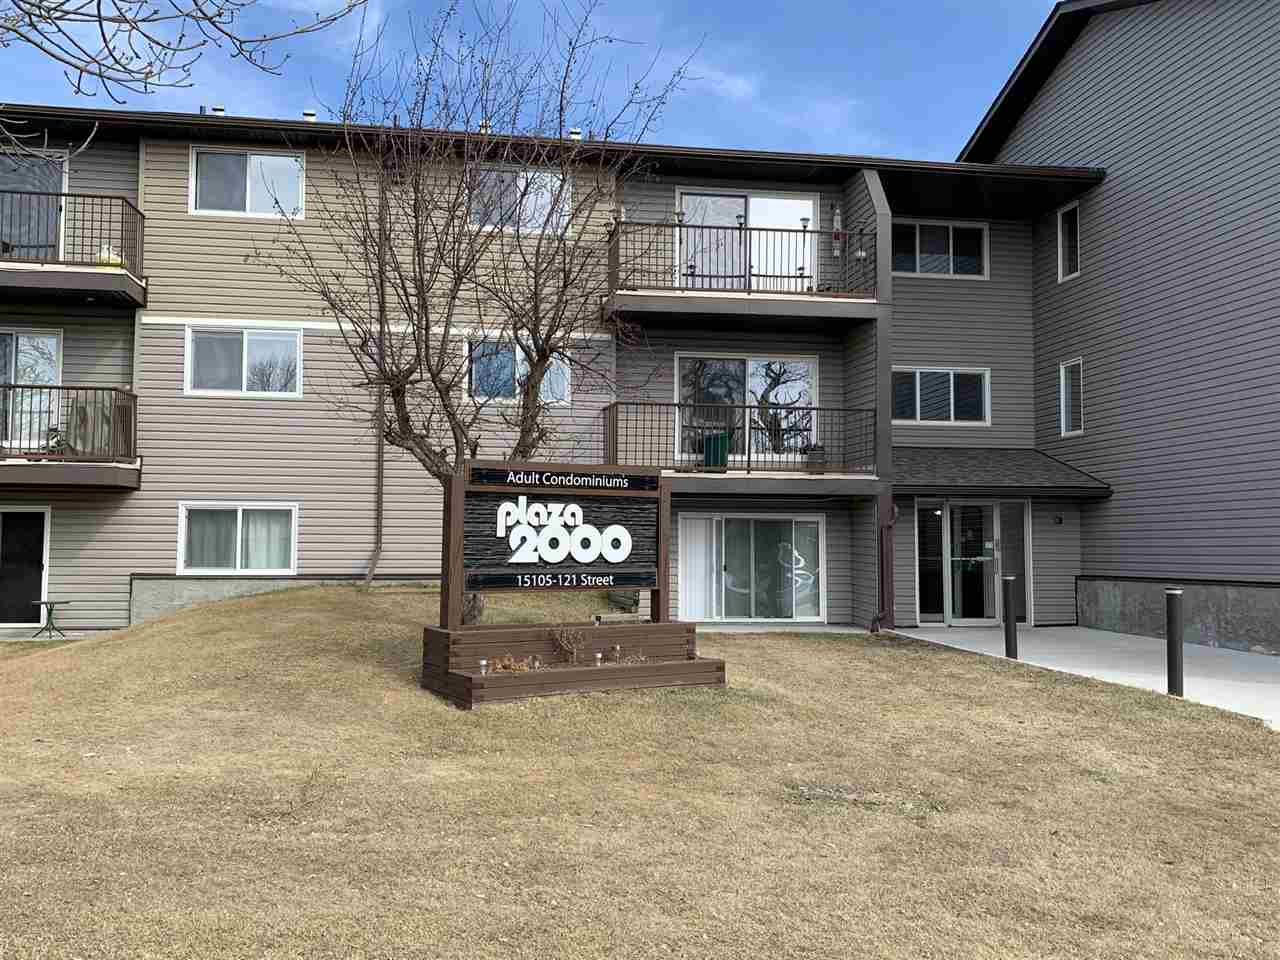 Attention first time home buyers and investors. Welcome to this updated 1 bedroom, 1 bathroom, 18+ condo located next to Caernarvan Park. This top floor, West facing suite is very bright and offers a large balcony right off the living room that overlooks the park. This building is very well maintained and has recently had the shingles, windows, siding, patio doors and the roof re-done. This unit is conveniently located close to schools, shopping, bus routes and many more amenities.